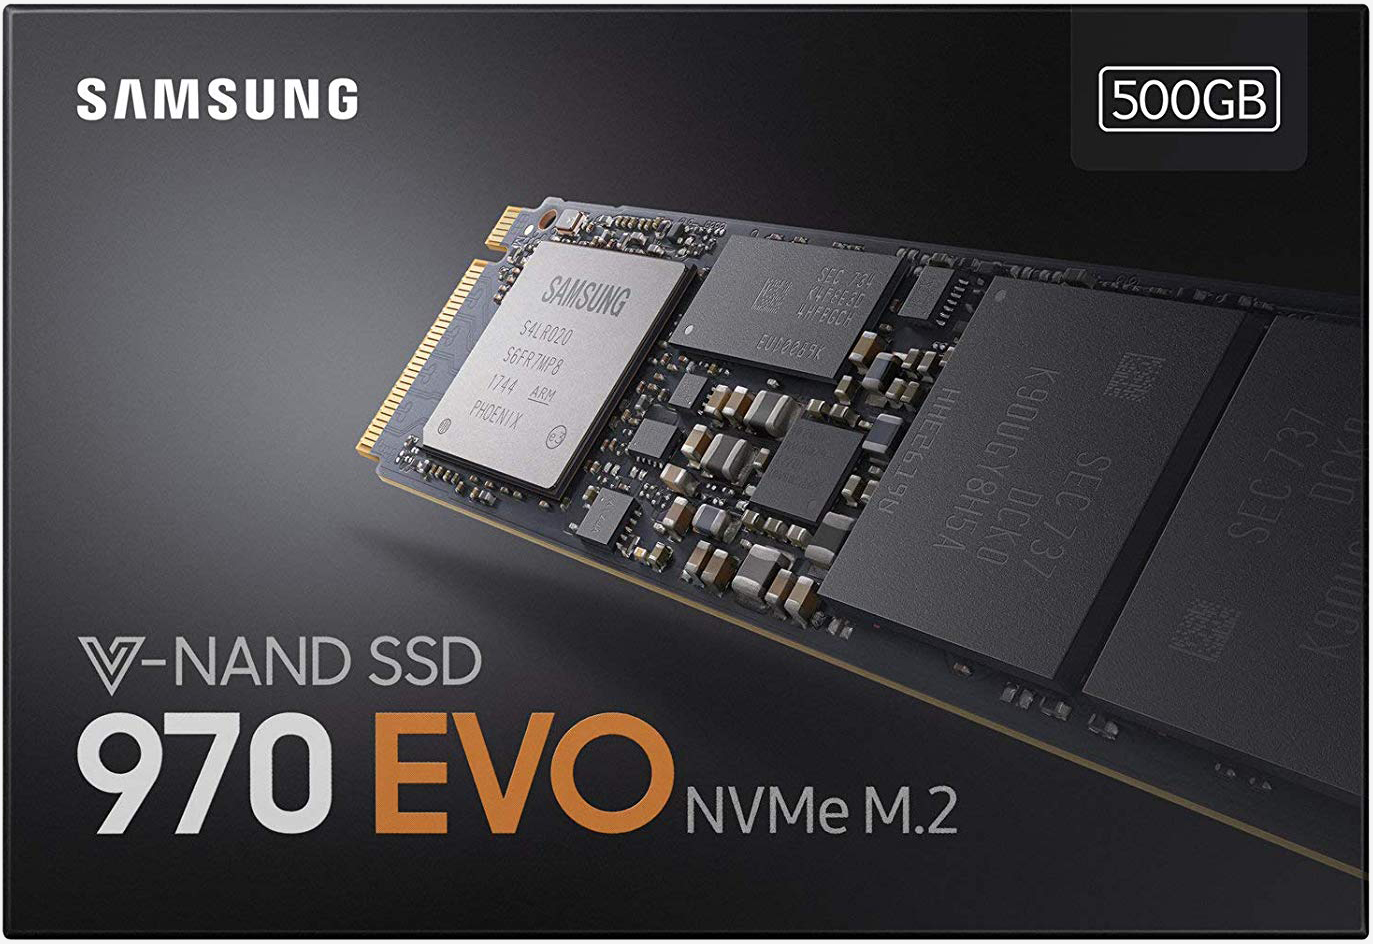 Deal alert: Save up to 20% on Samsung's 970 EVO NVMe SSD - TechSpot